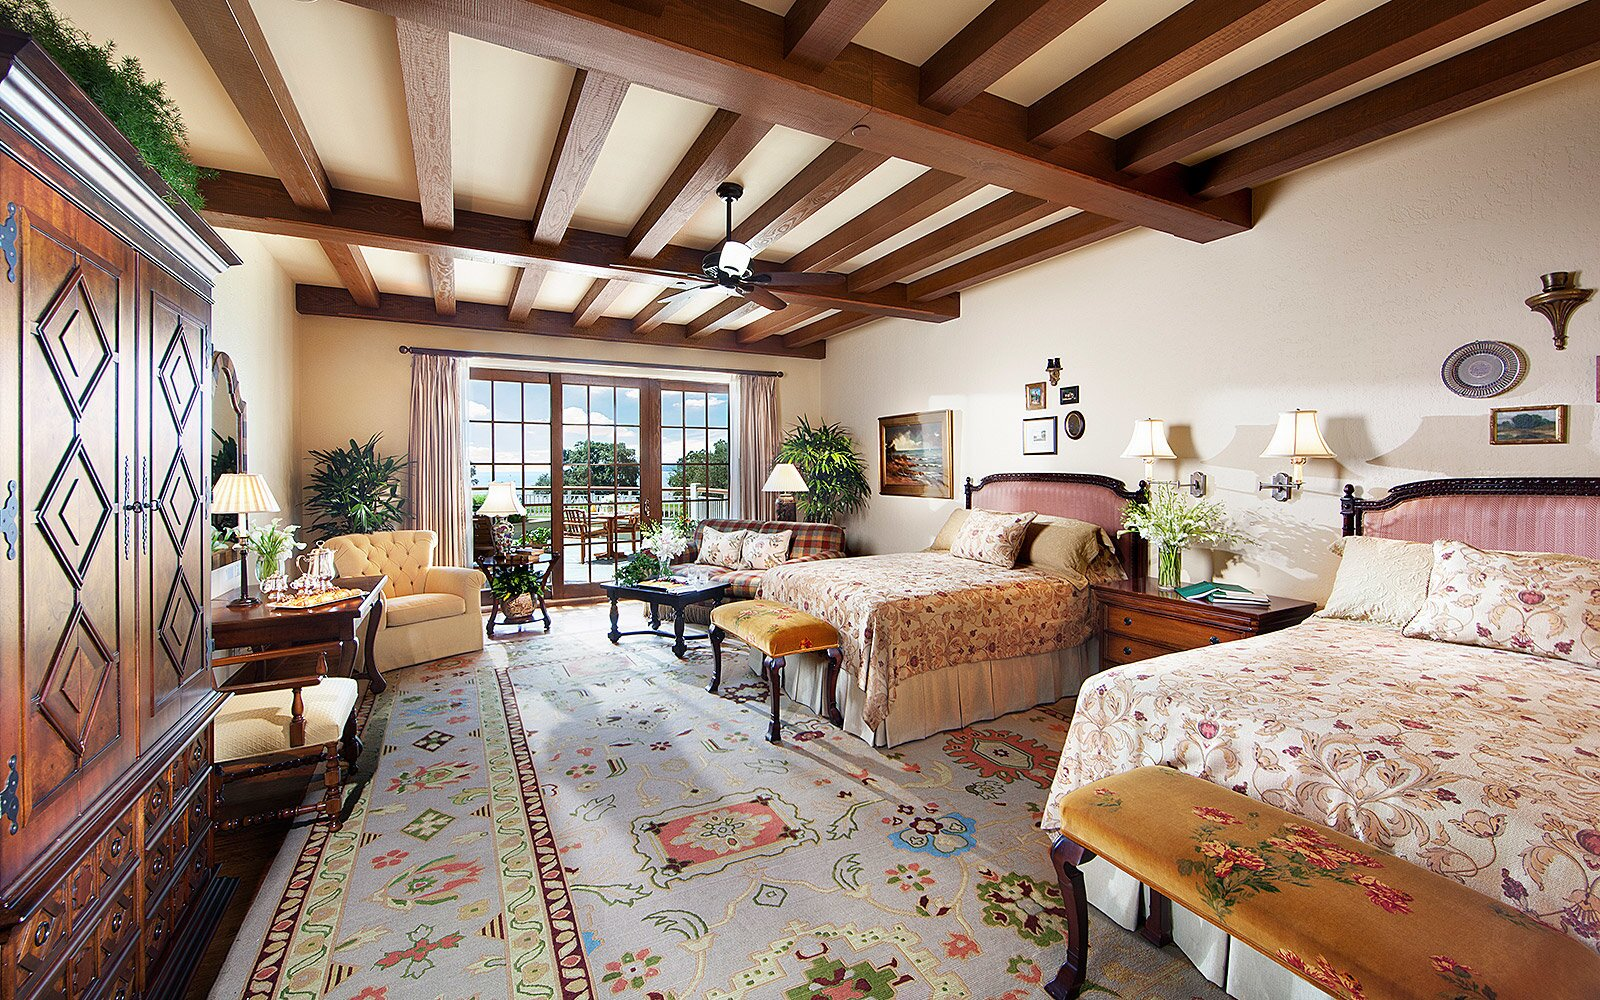 The World's Best Hotels in Every State | Travel + Leisure on facebook house plans, copperwood house plans, smith house plans, circular house plans, earth bermed homes house plans, millennium house plans, evergreen house plans, mexican ranch style house plans, flickr house plans, gilbert house plans, amazon house plans, heritage house plans, southwestern house plans, oasis house plans, galveston house plans, riverside house plans, sun valley house plans, sandpiper house plans, crown house plans, cathedral house plans,